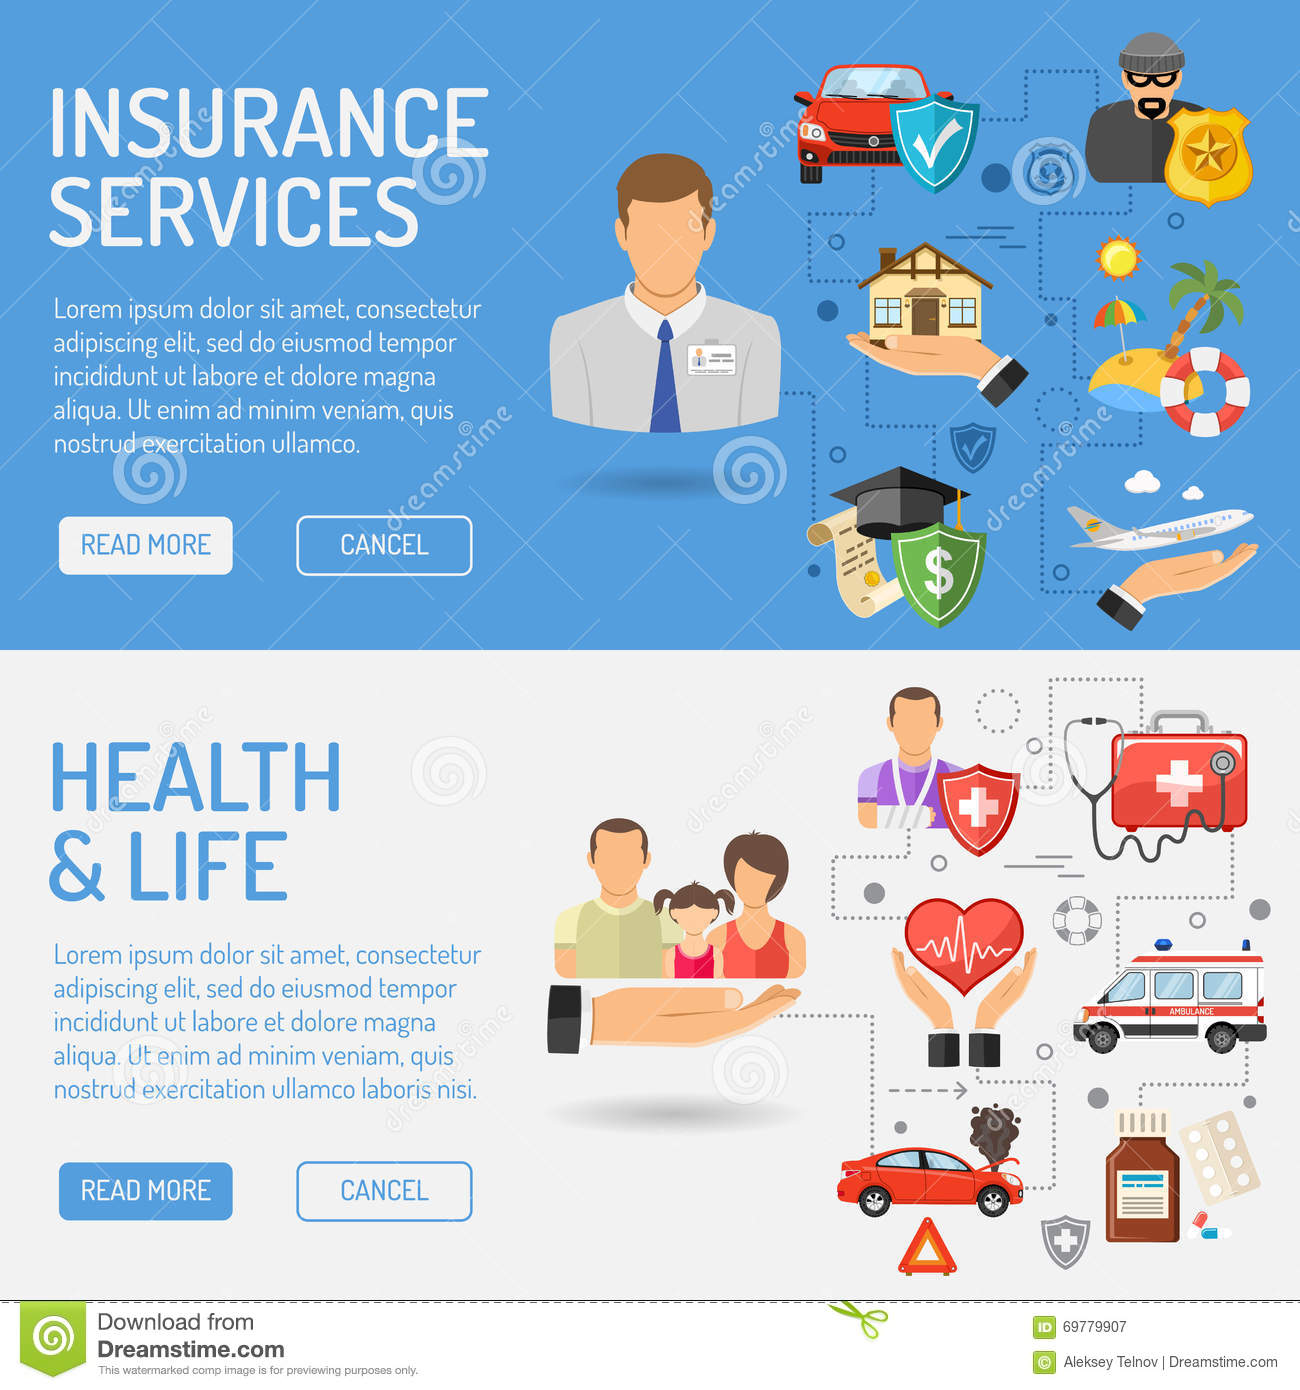 Insurance Services Banners Stock Vector - Image: 69779907